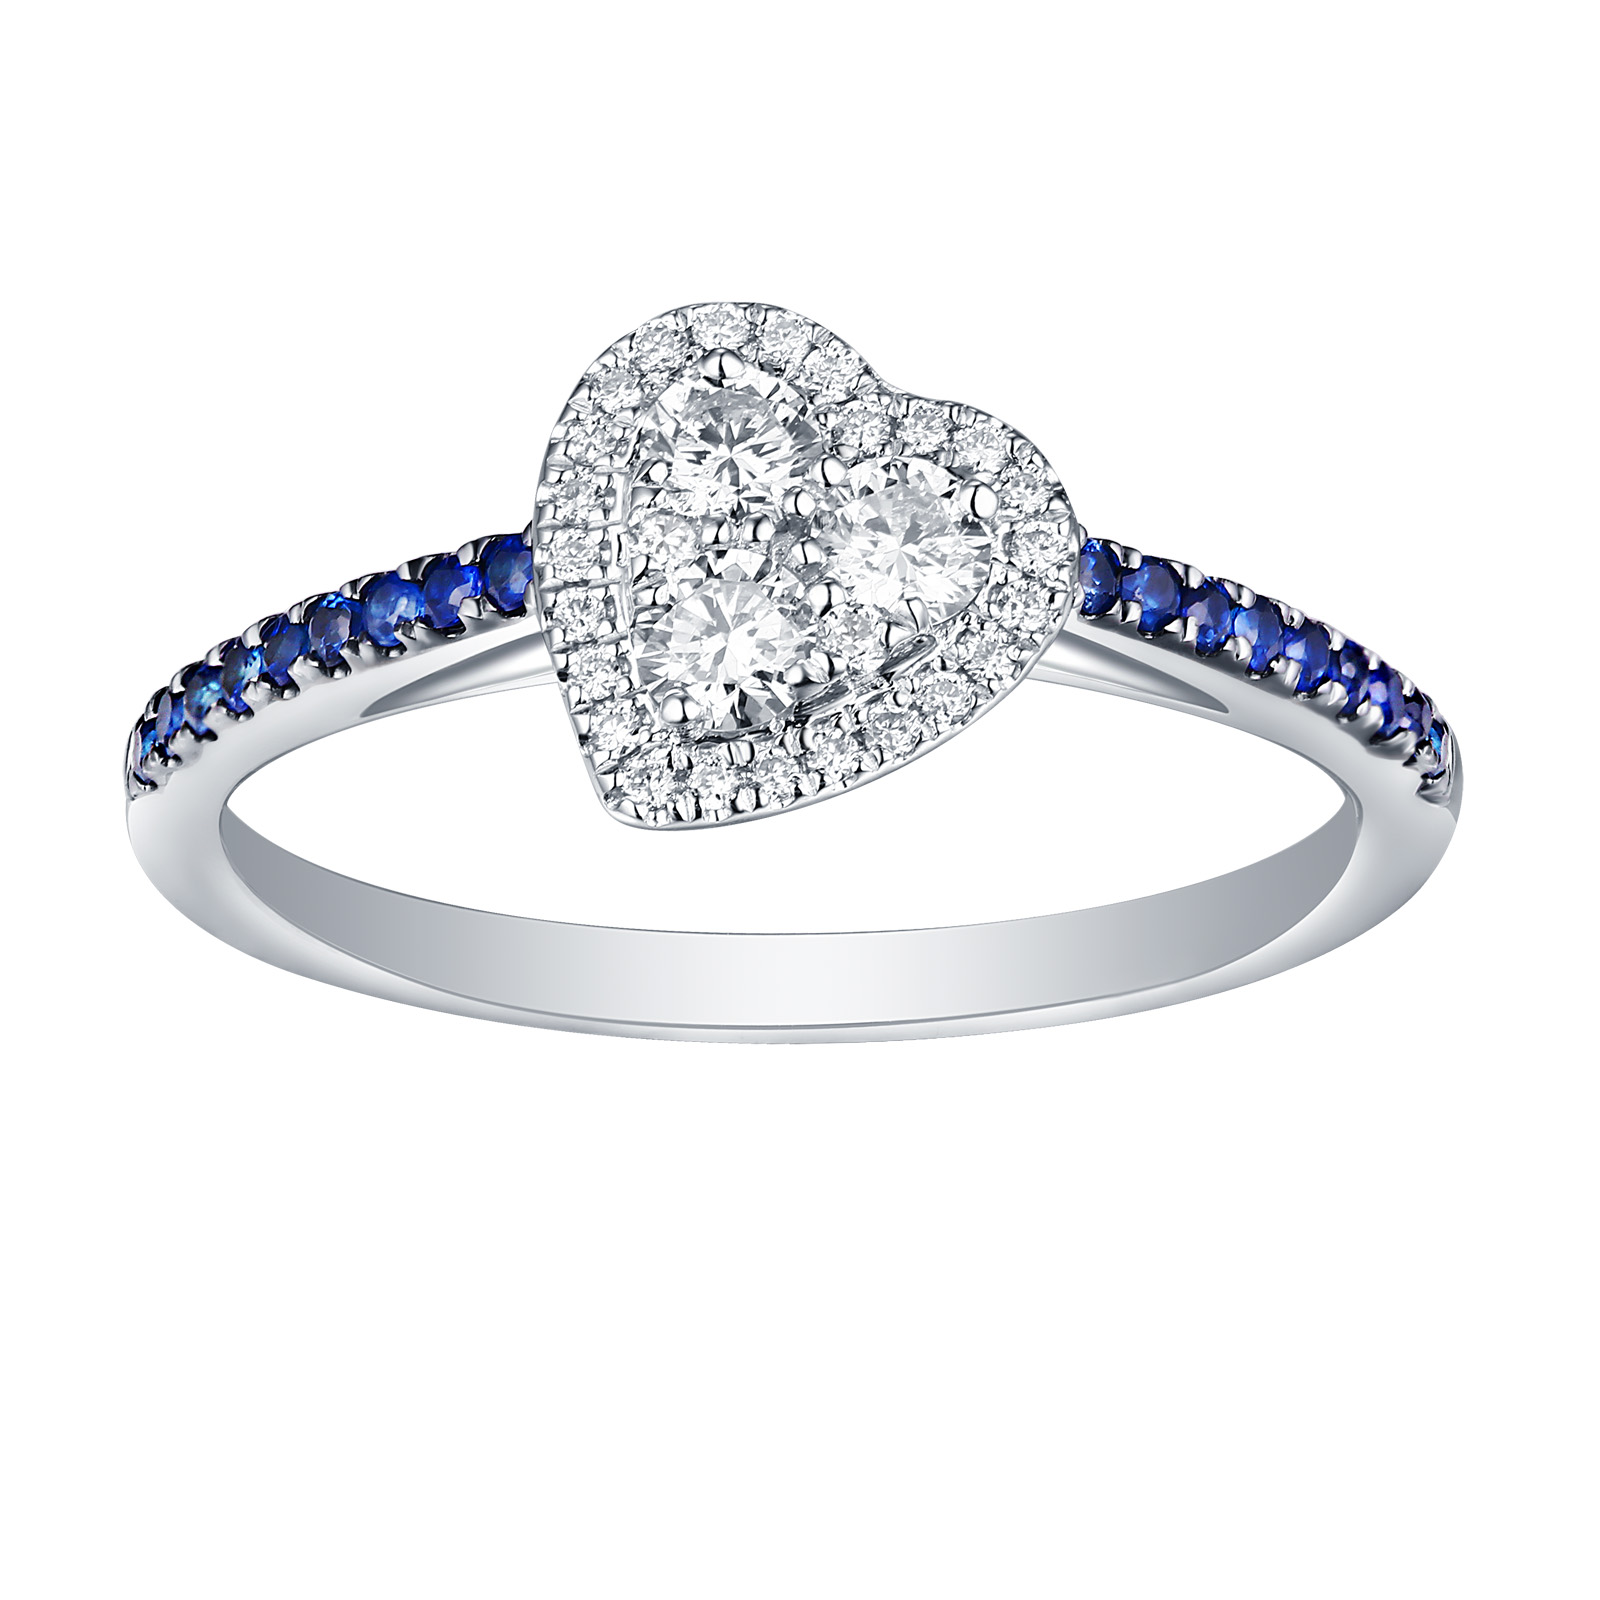 R25919WBS- 14K White Gold Blue Sapphire Diamond Ring, 0.46 TCW